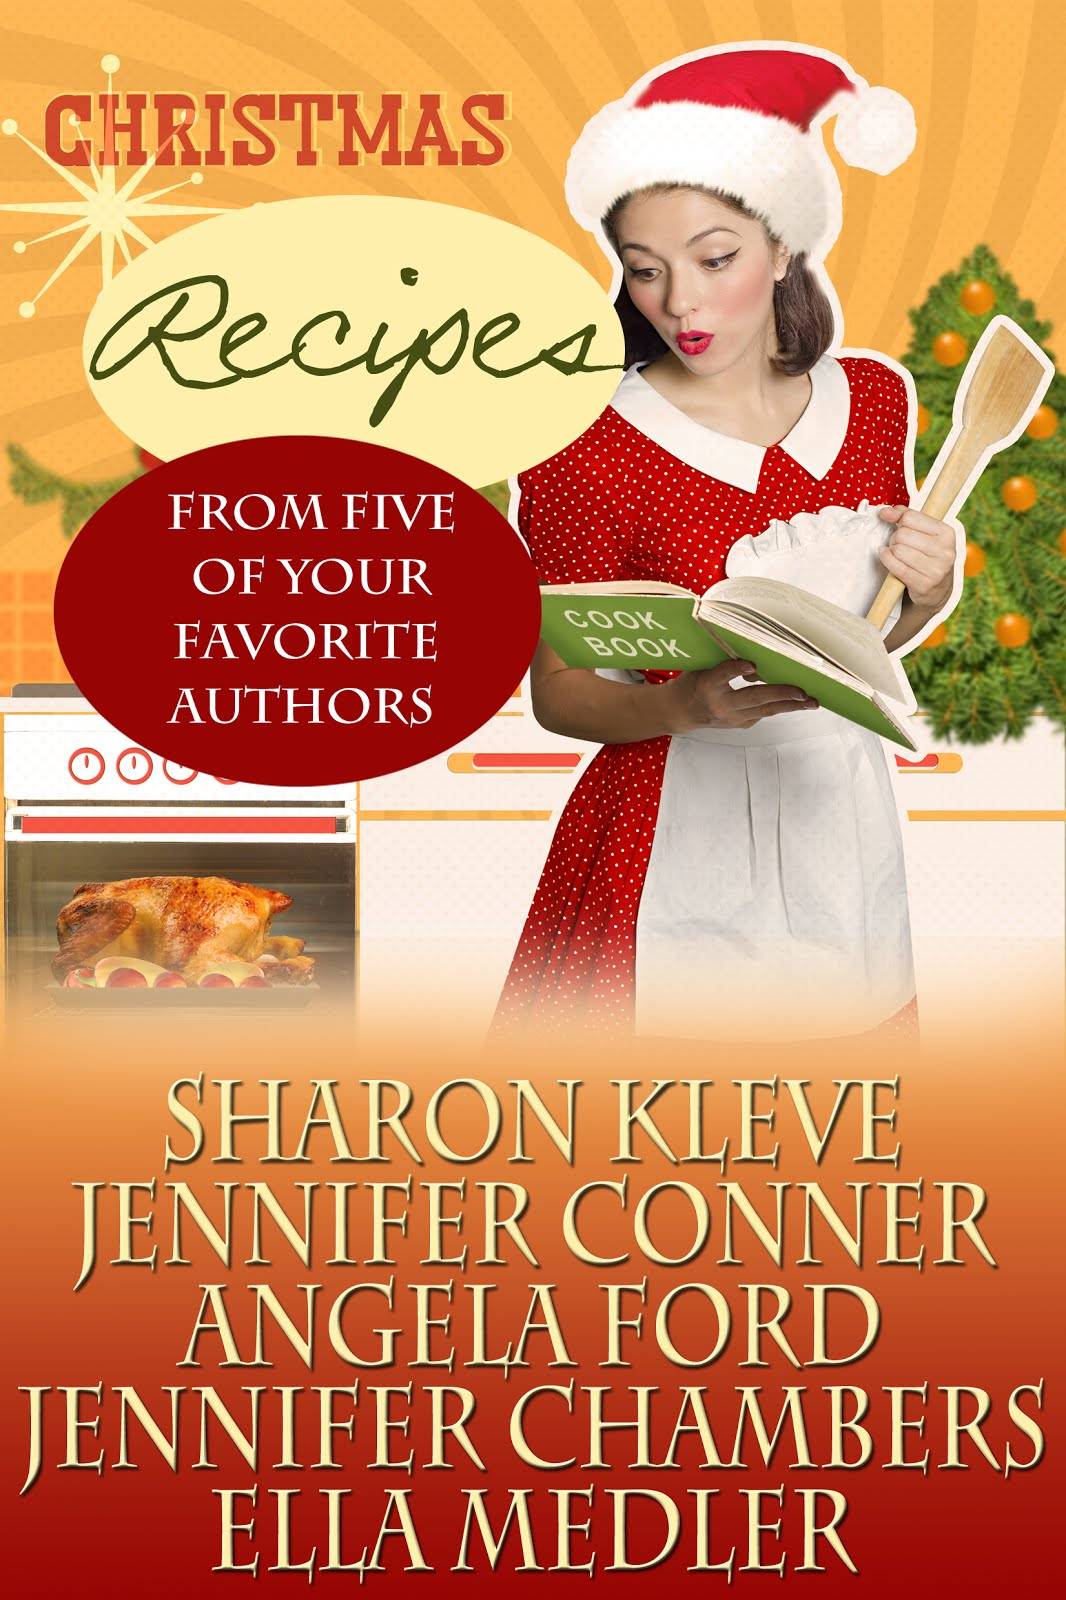 Christmas Recipes From Five of Your Favorite Authors